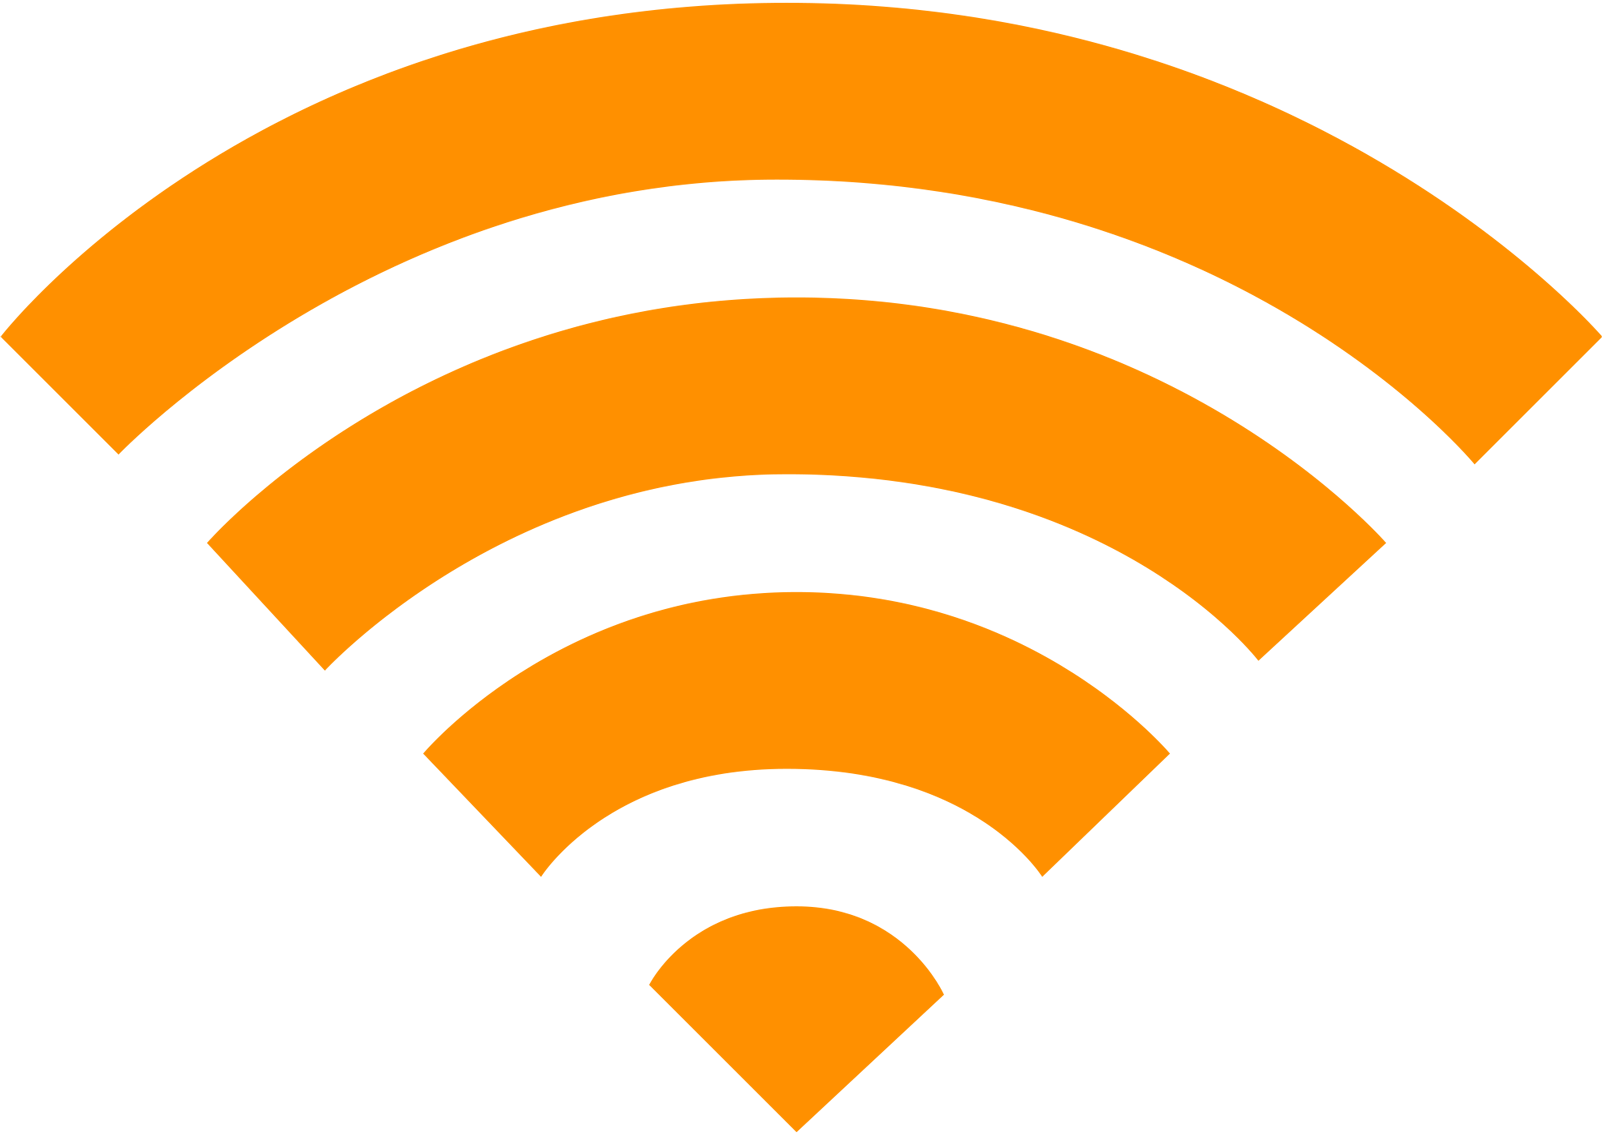 Index of /public/img/assets/wifi.